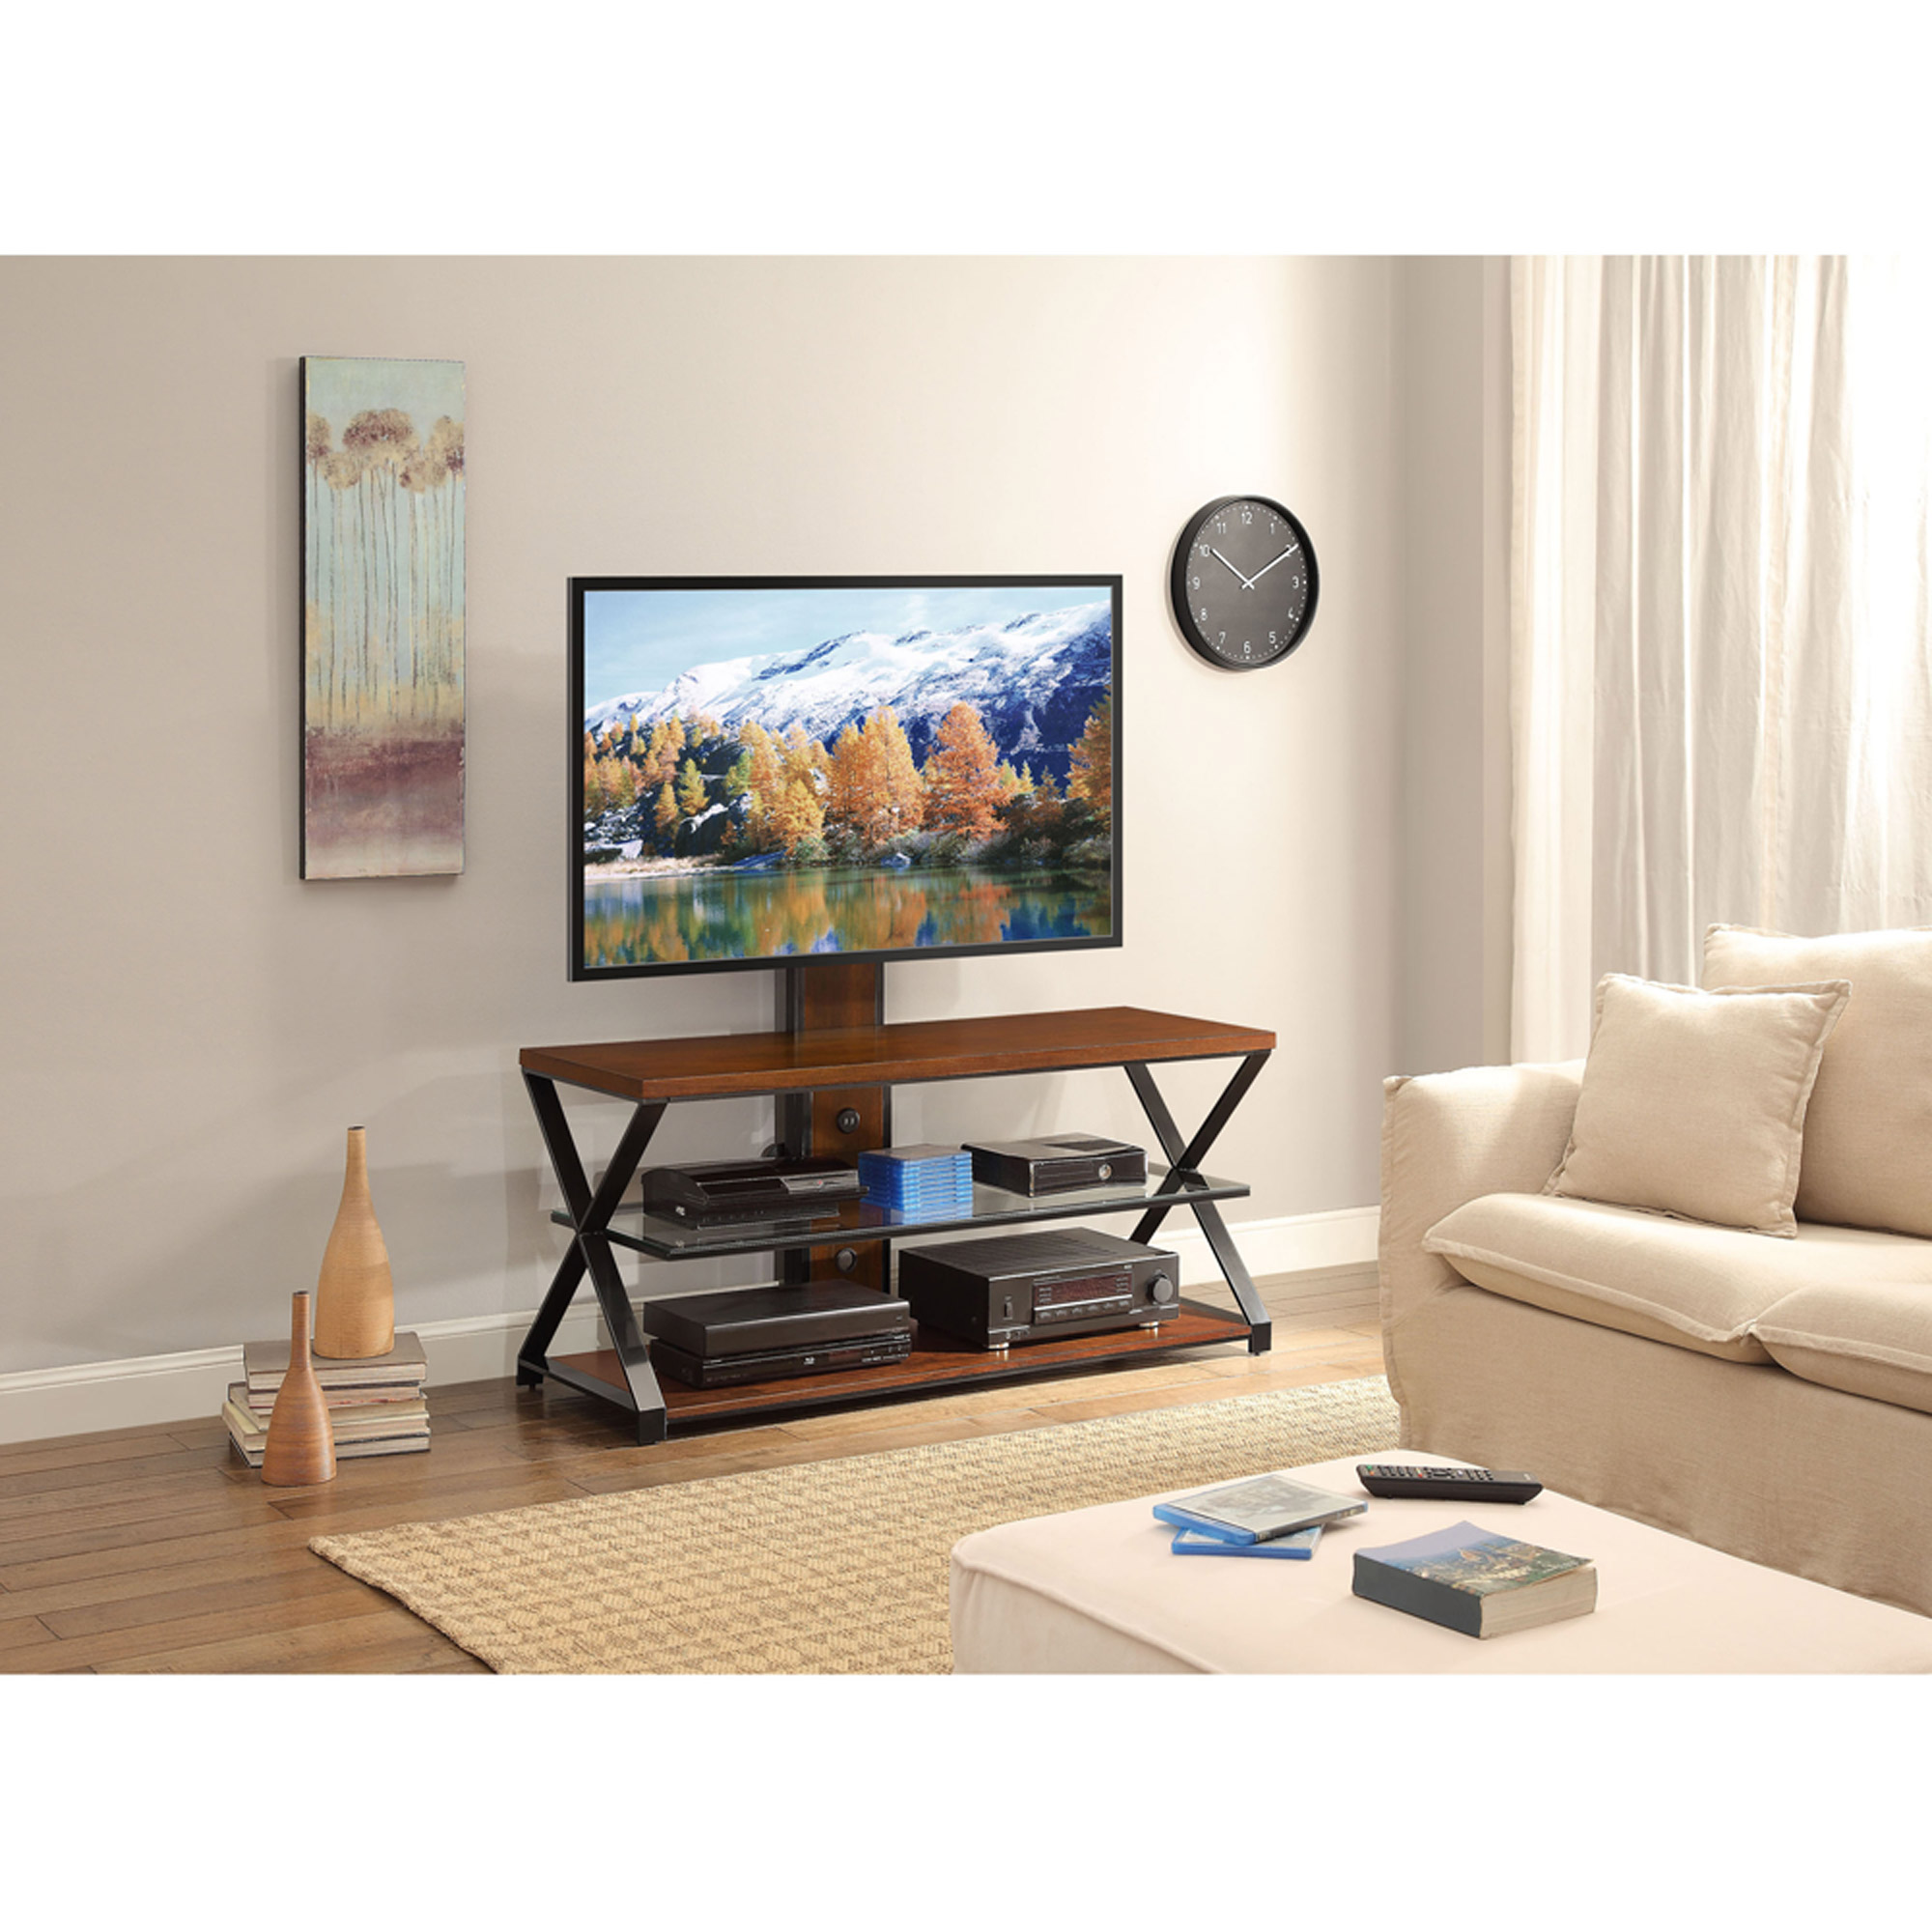 Jaxon 3-in-1 Cognac TV Stand for TVs up to 70""